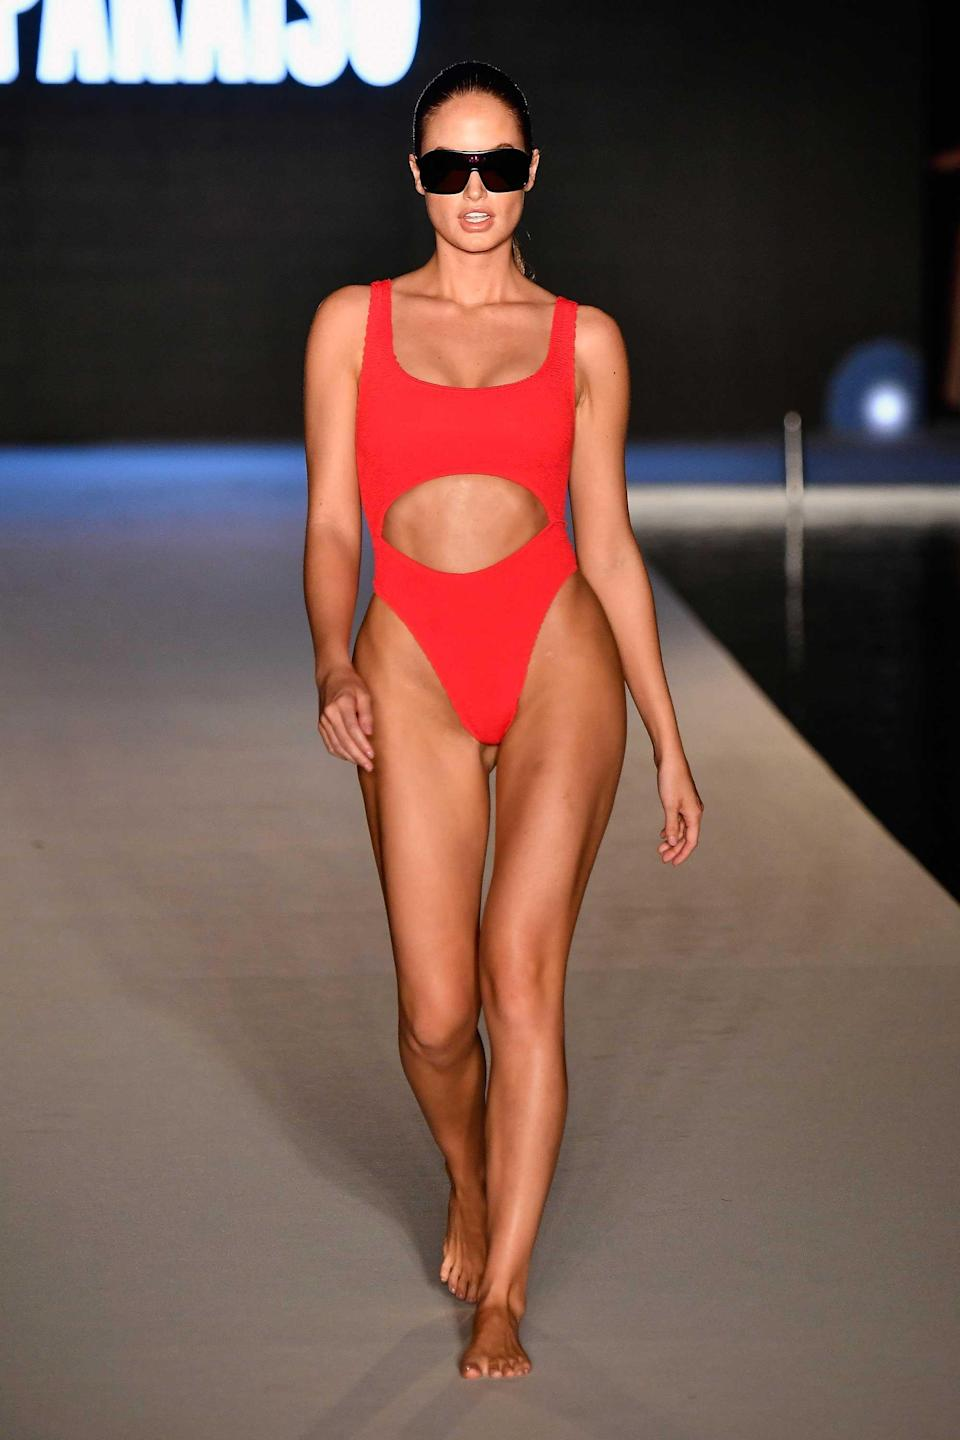 <p>A model walks the runway wearing a red cutout swimsuit for the 2018 <em>Sports Illustrated</em> swimsuit show during the Paraiso Fashion Fair in Miami at the W South Beach hotel on July 15. (Photo: Alexander Tamargo/Getty Images for Sports Illustrated) </p>